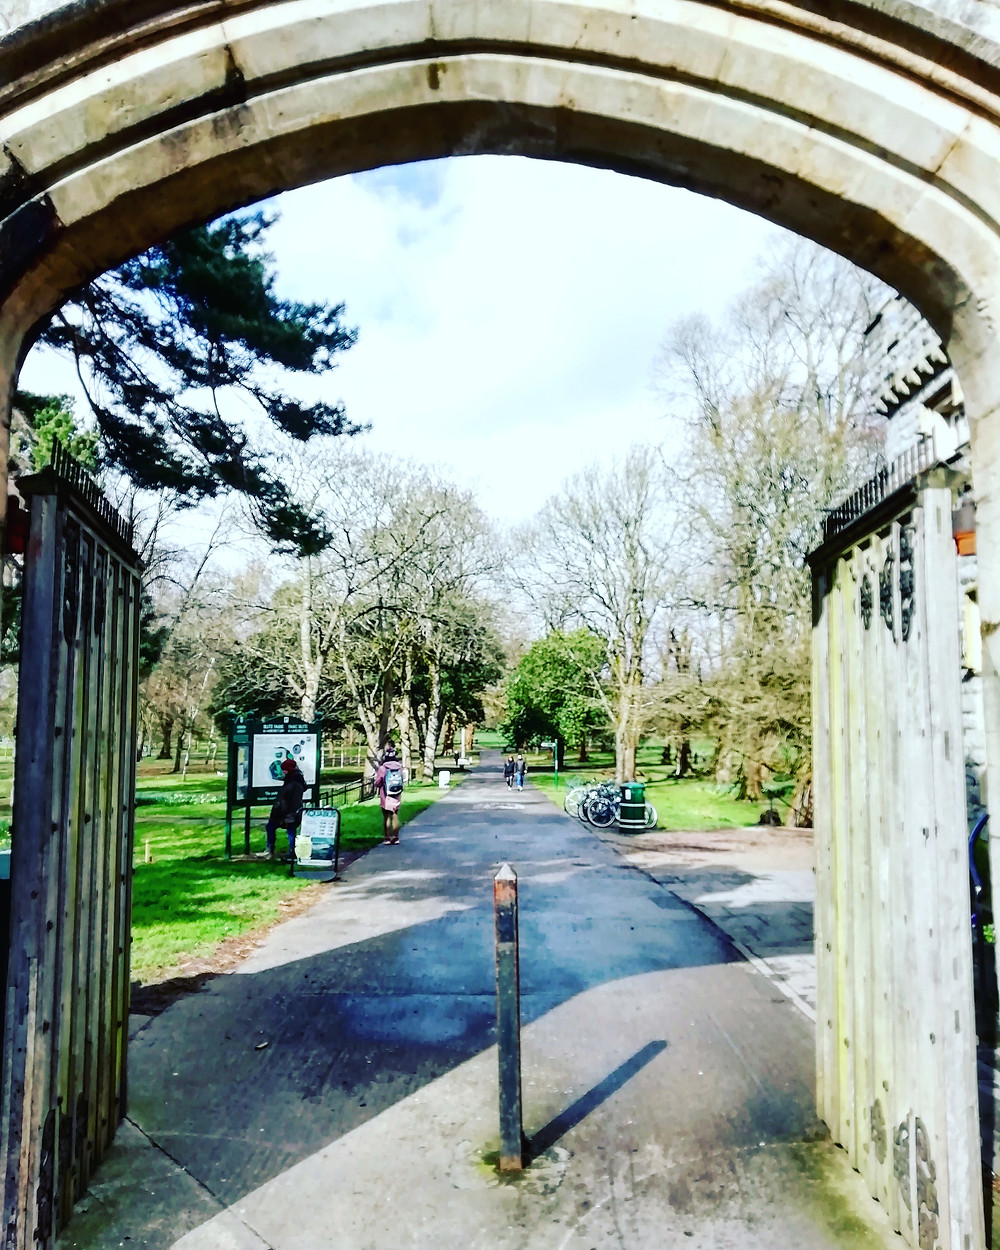 The Castle St. entrance to Bute Park in Cardiff.